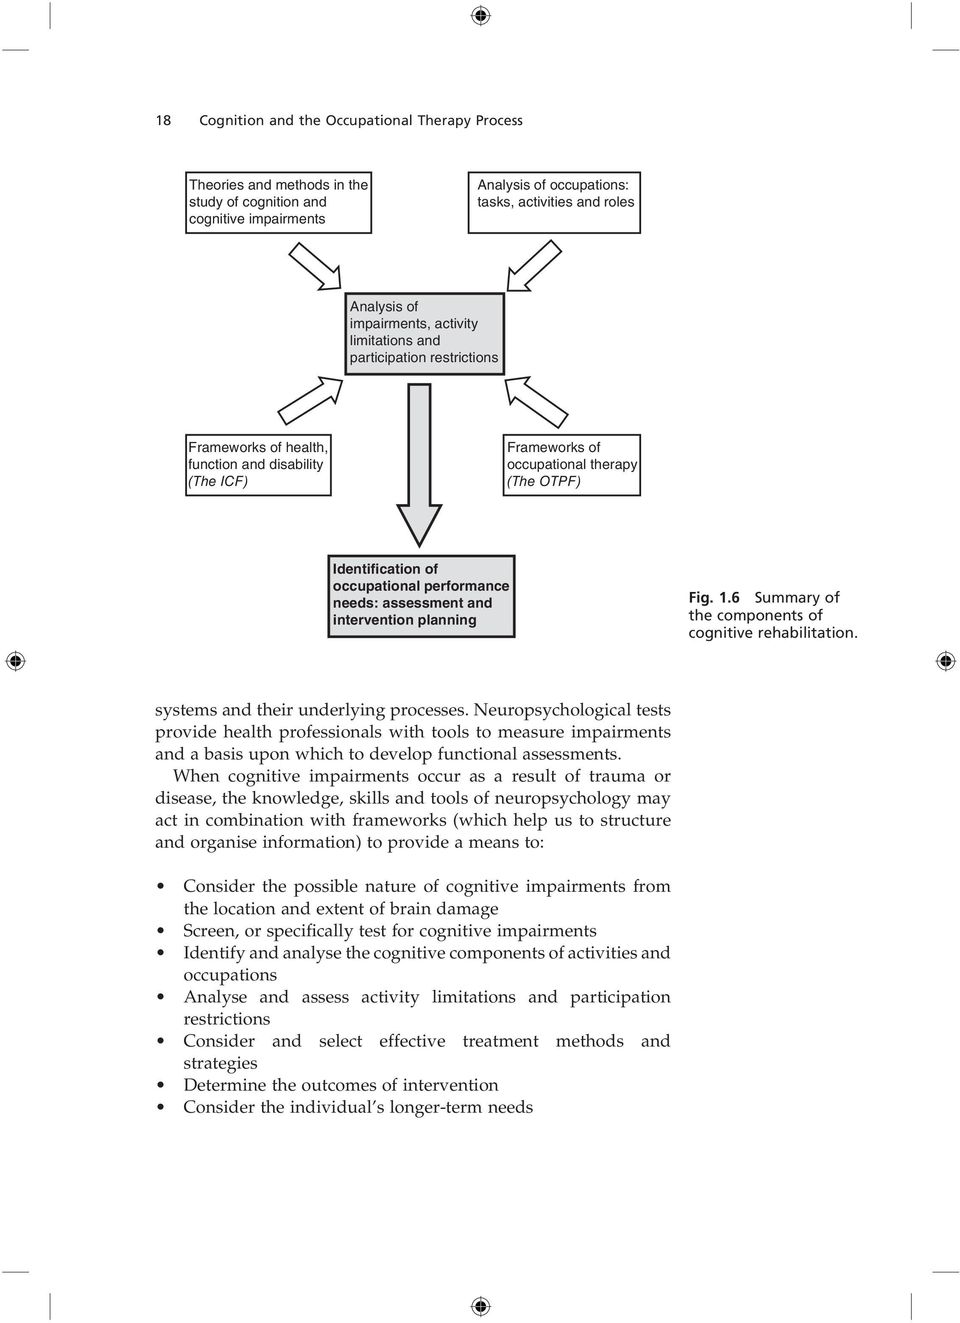 performance needs: assessment and intervention planning Fig. 1.6 Summary of the components of cognitive rehabilitation. systems and their underlying processes.